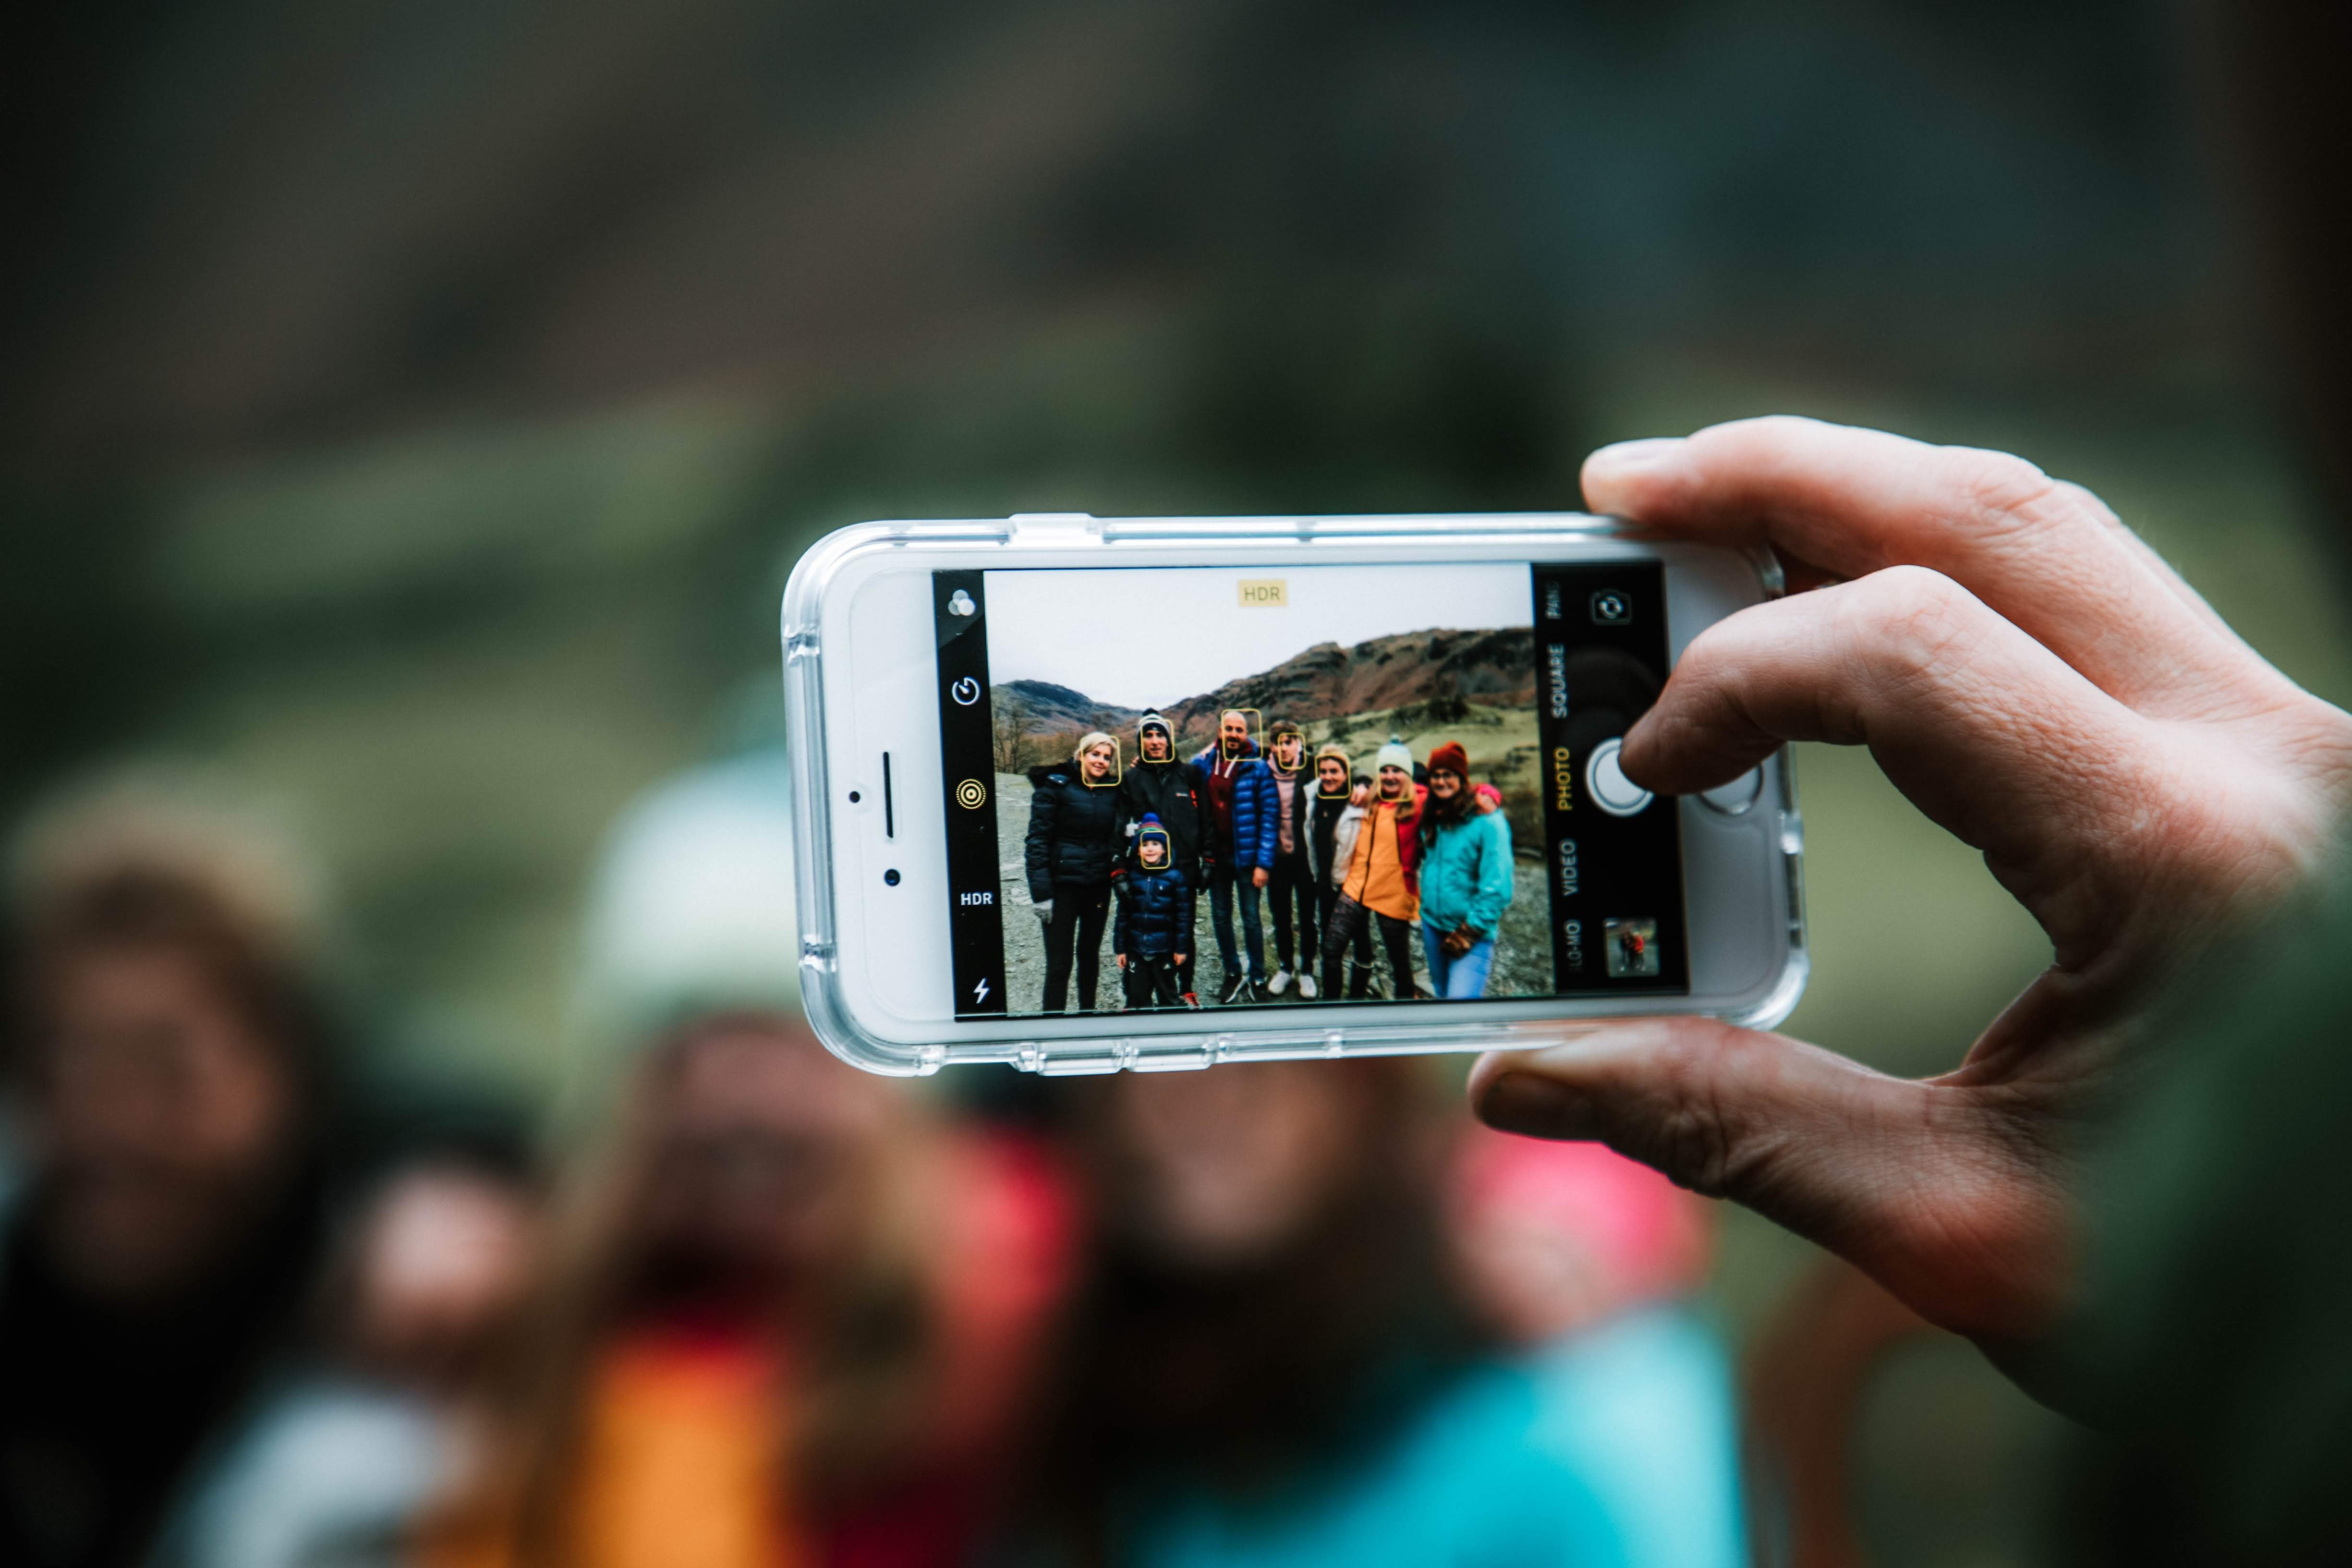 person holding silver iPhone 6 taking photo of people